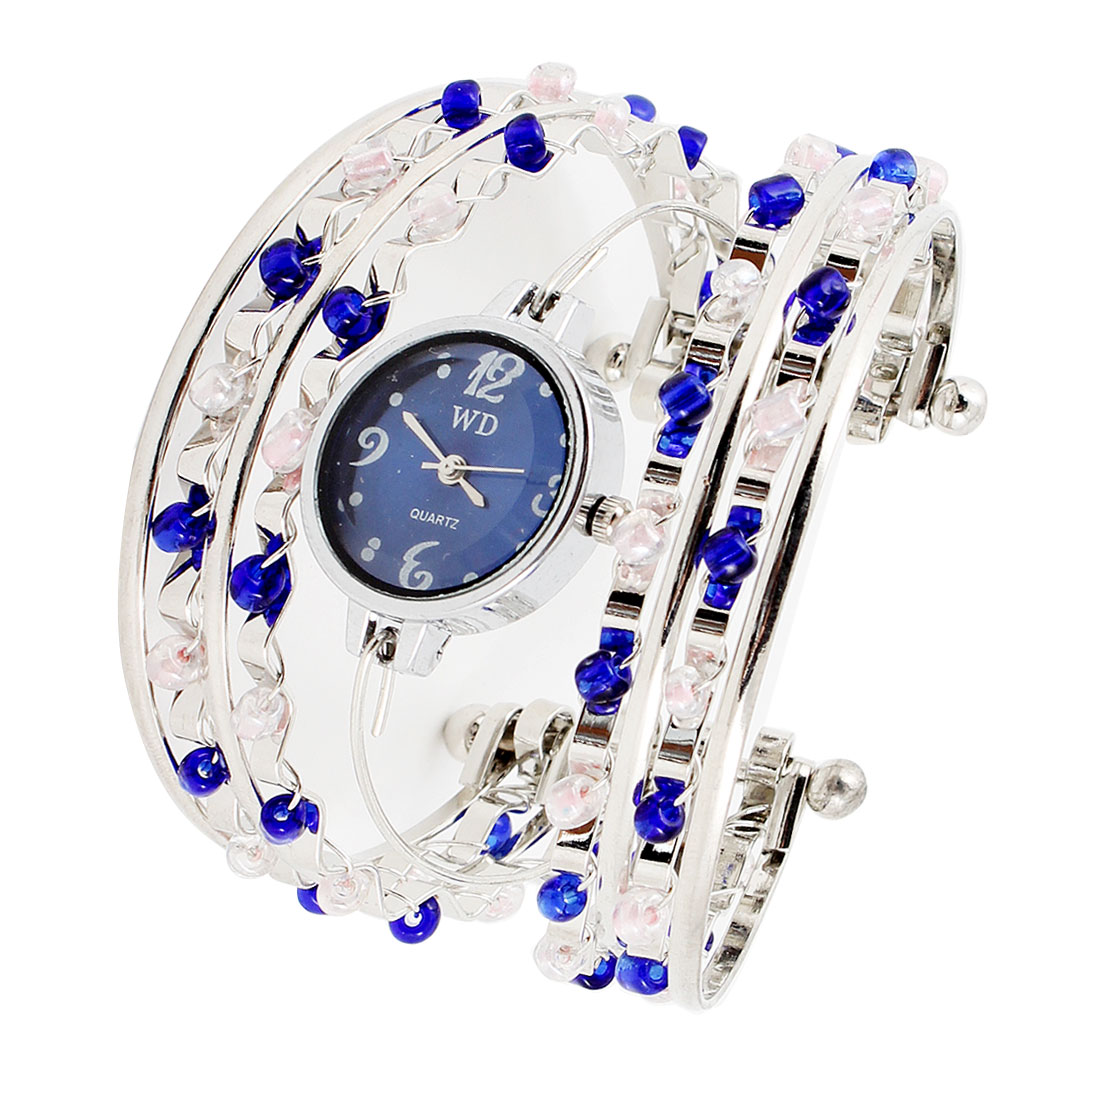 Arabic Number Dial Blue Pink Beads Decoration Half Open Bracelet Watch for Women